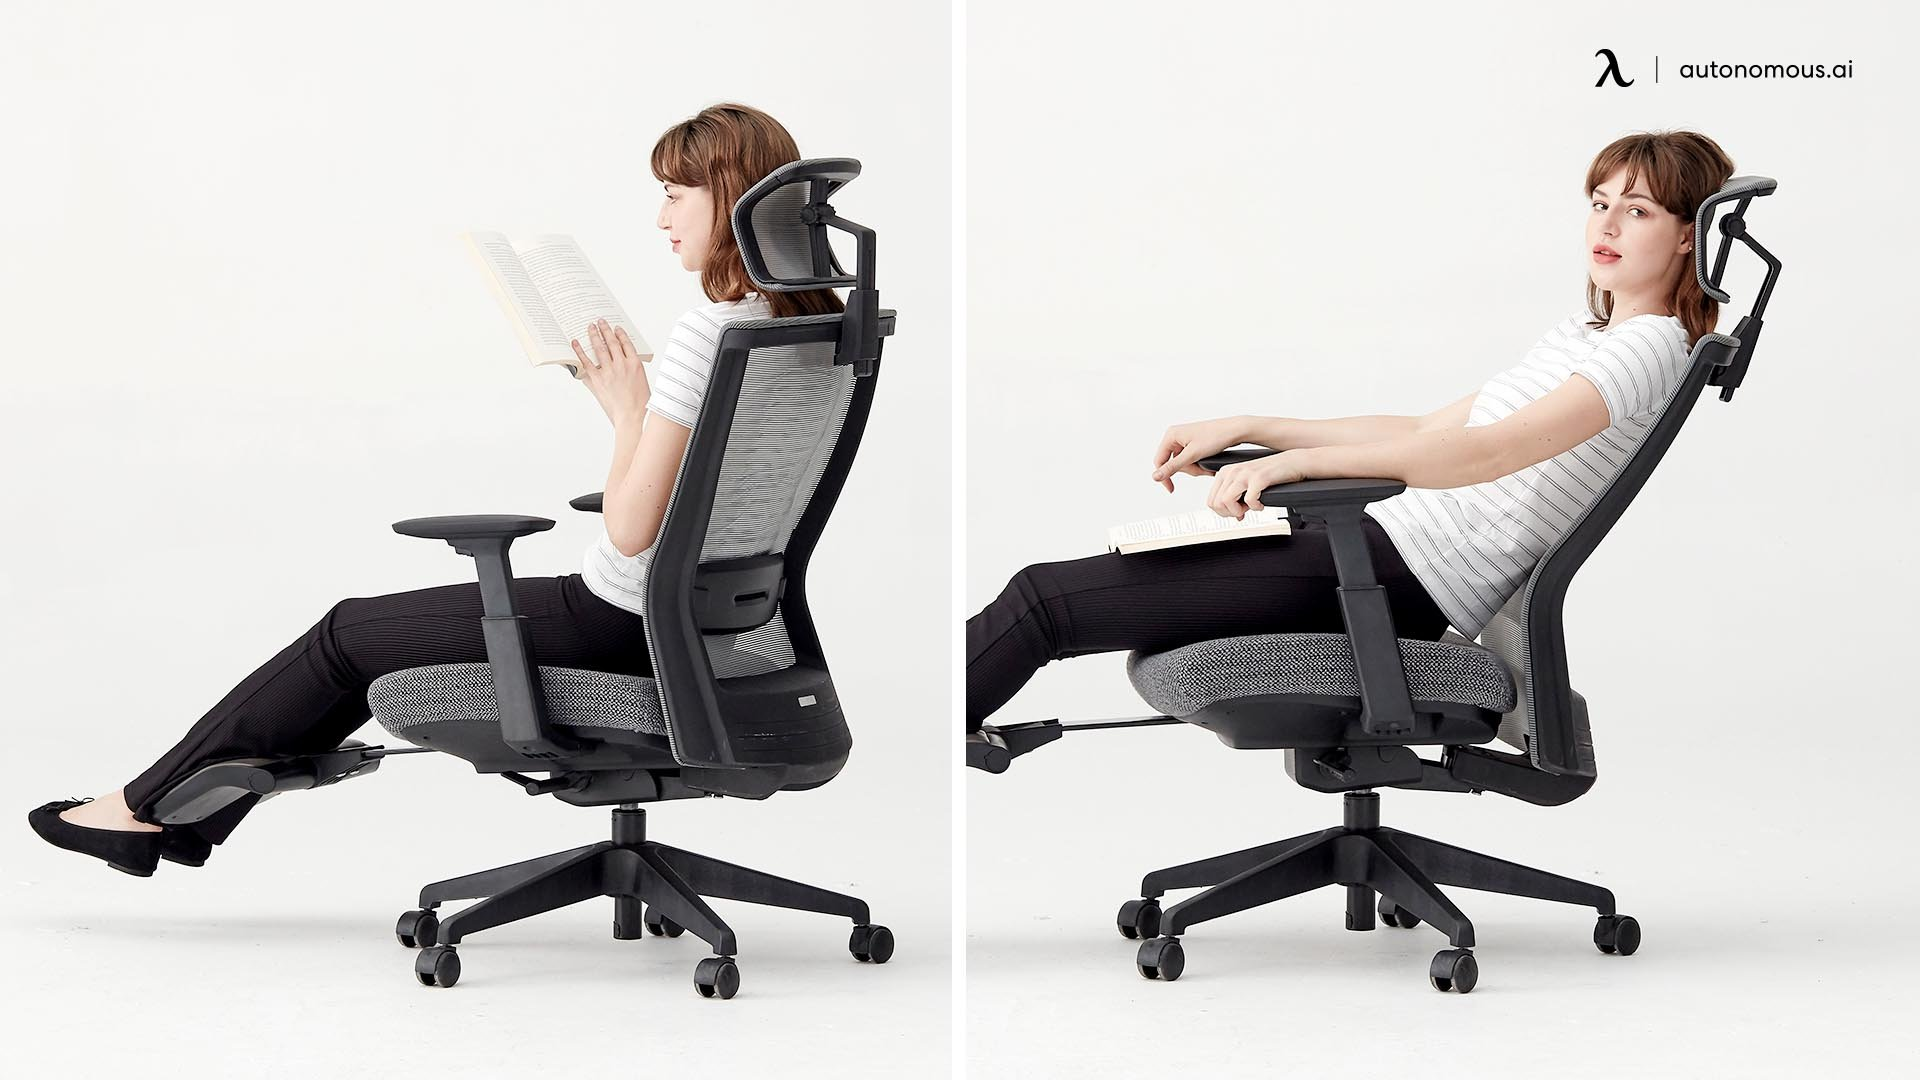 Headrest Height and Angle